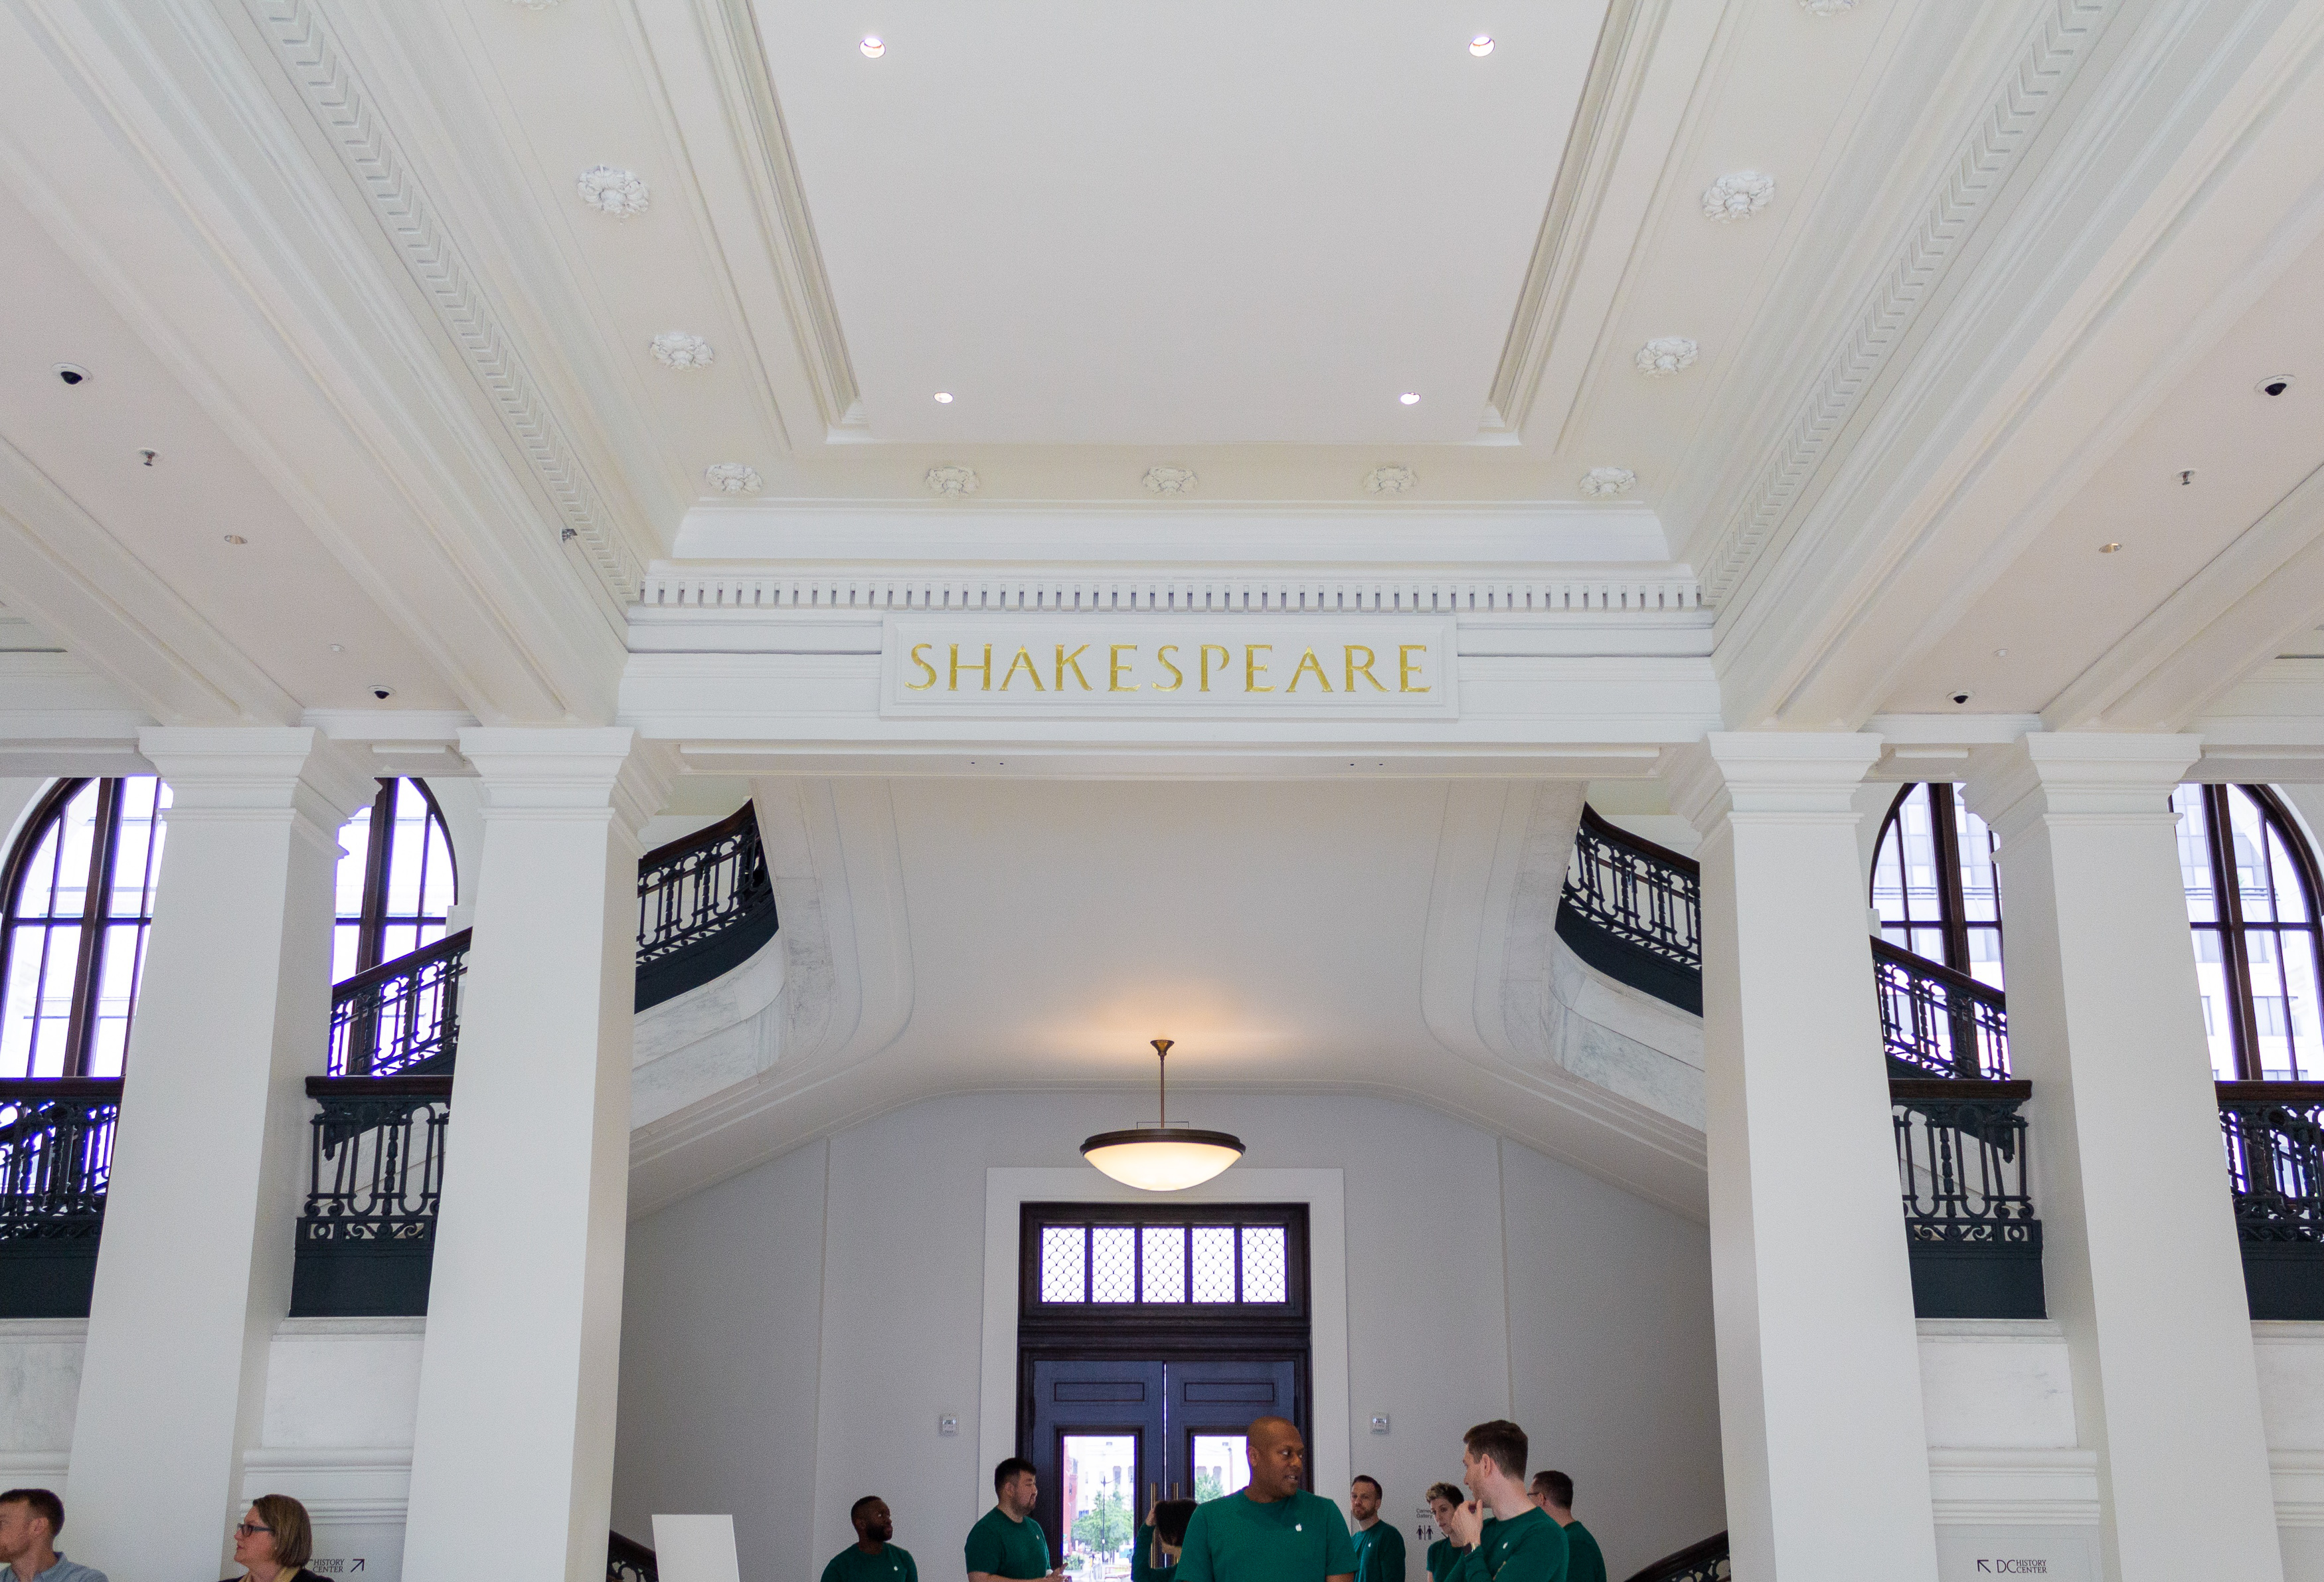 Apple Carnegie Library: An inside look at Apple's most